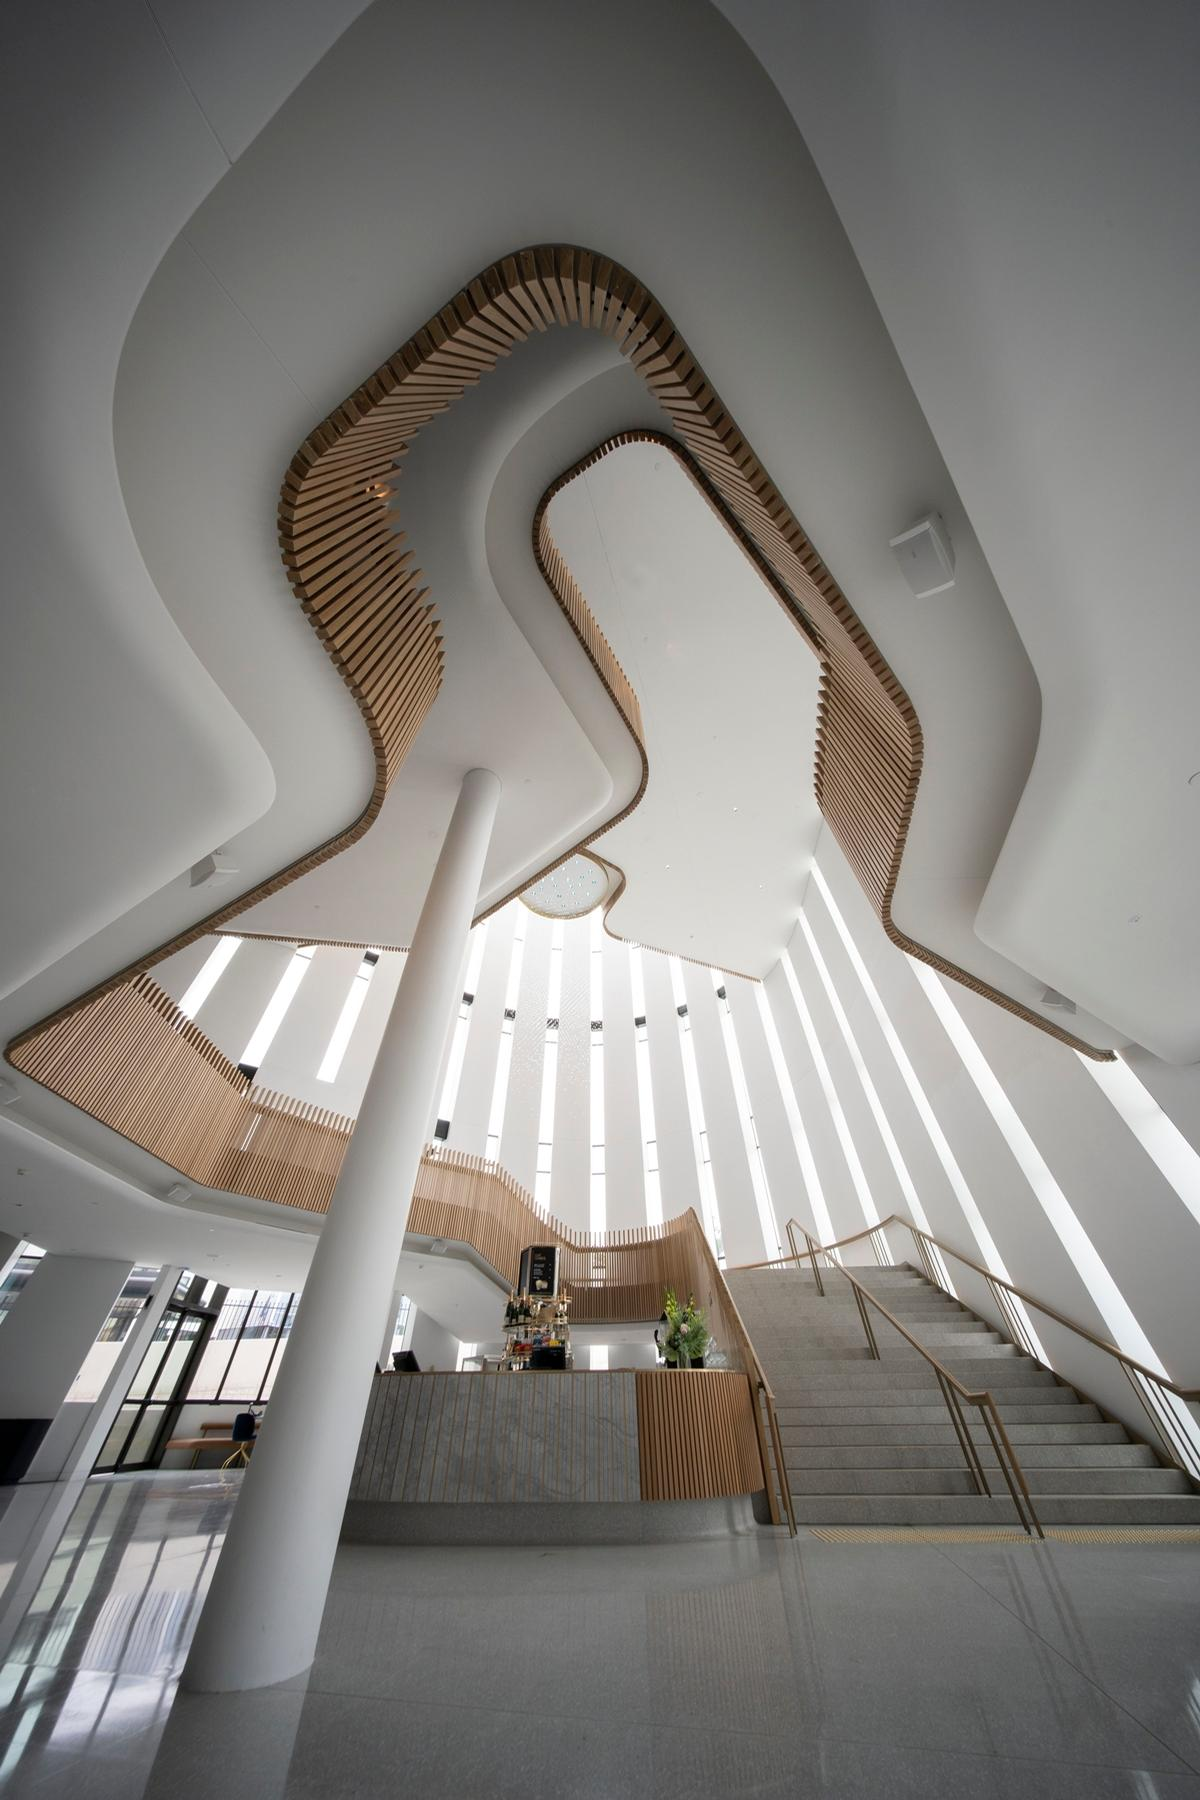 Cox Architecture describes the interior as having a 'symphonic quality' / John Gollings